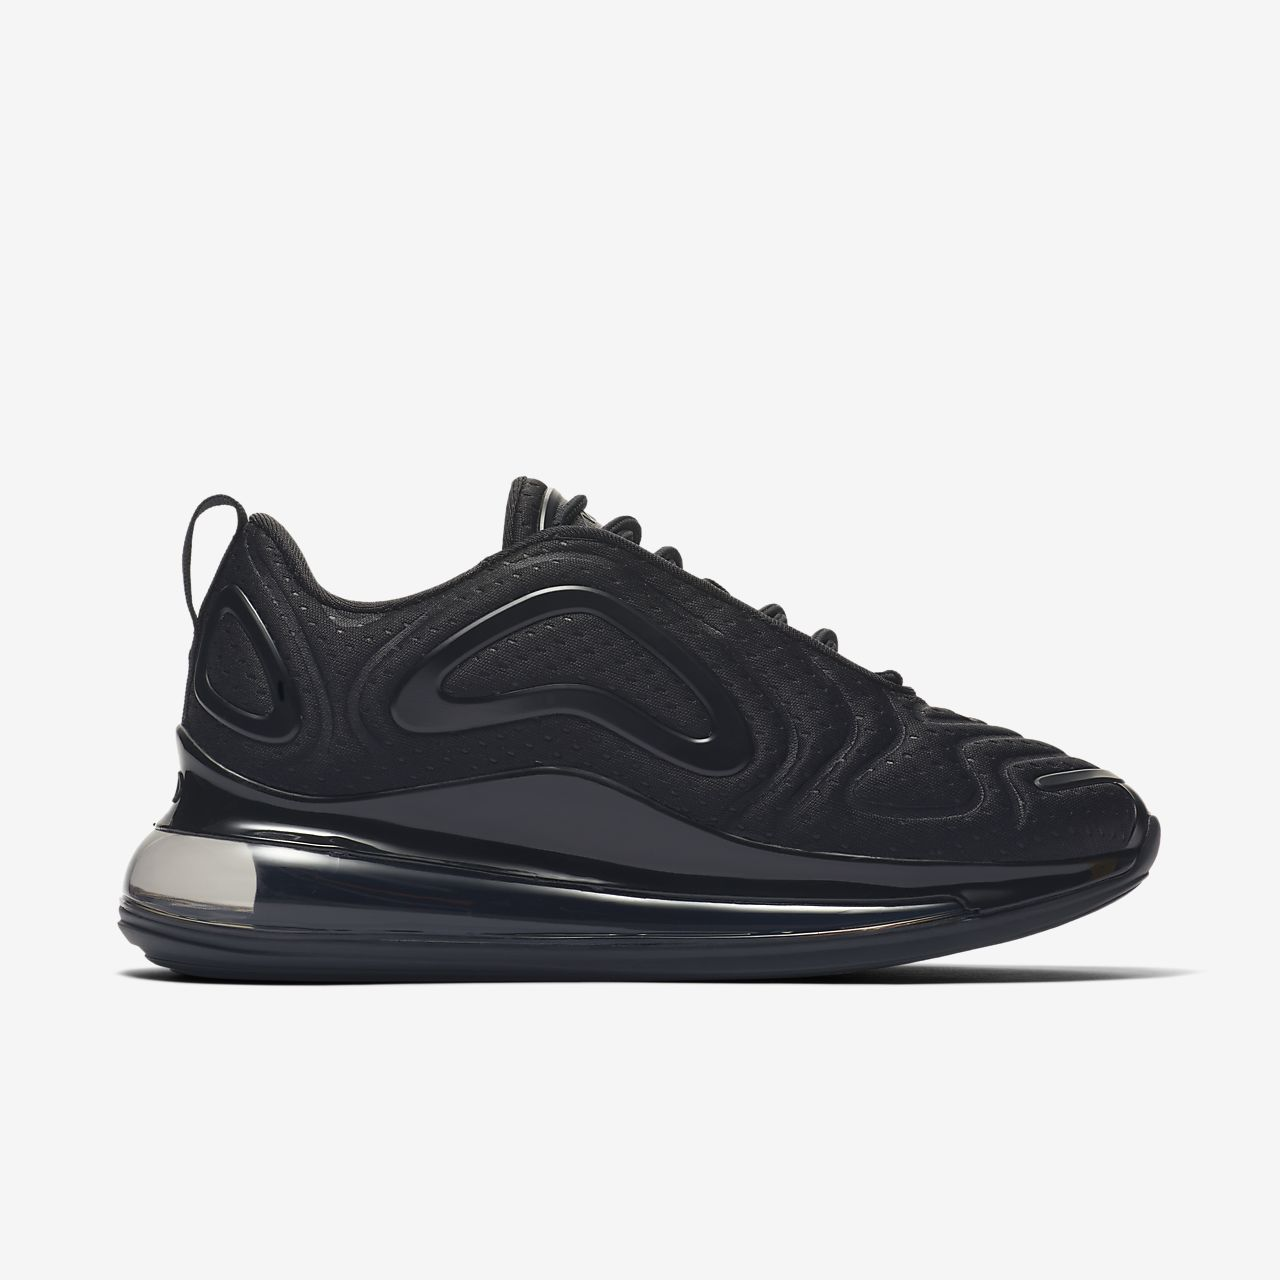 Nike Air Max 720 Black Anthracite Black Kids Boys Girls Trainers All Sizes